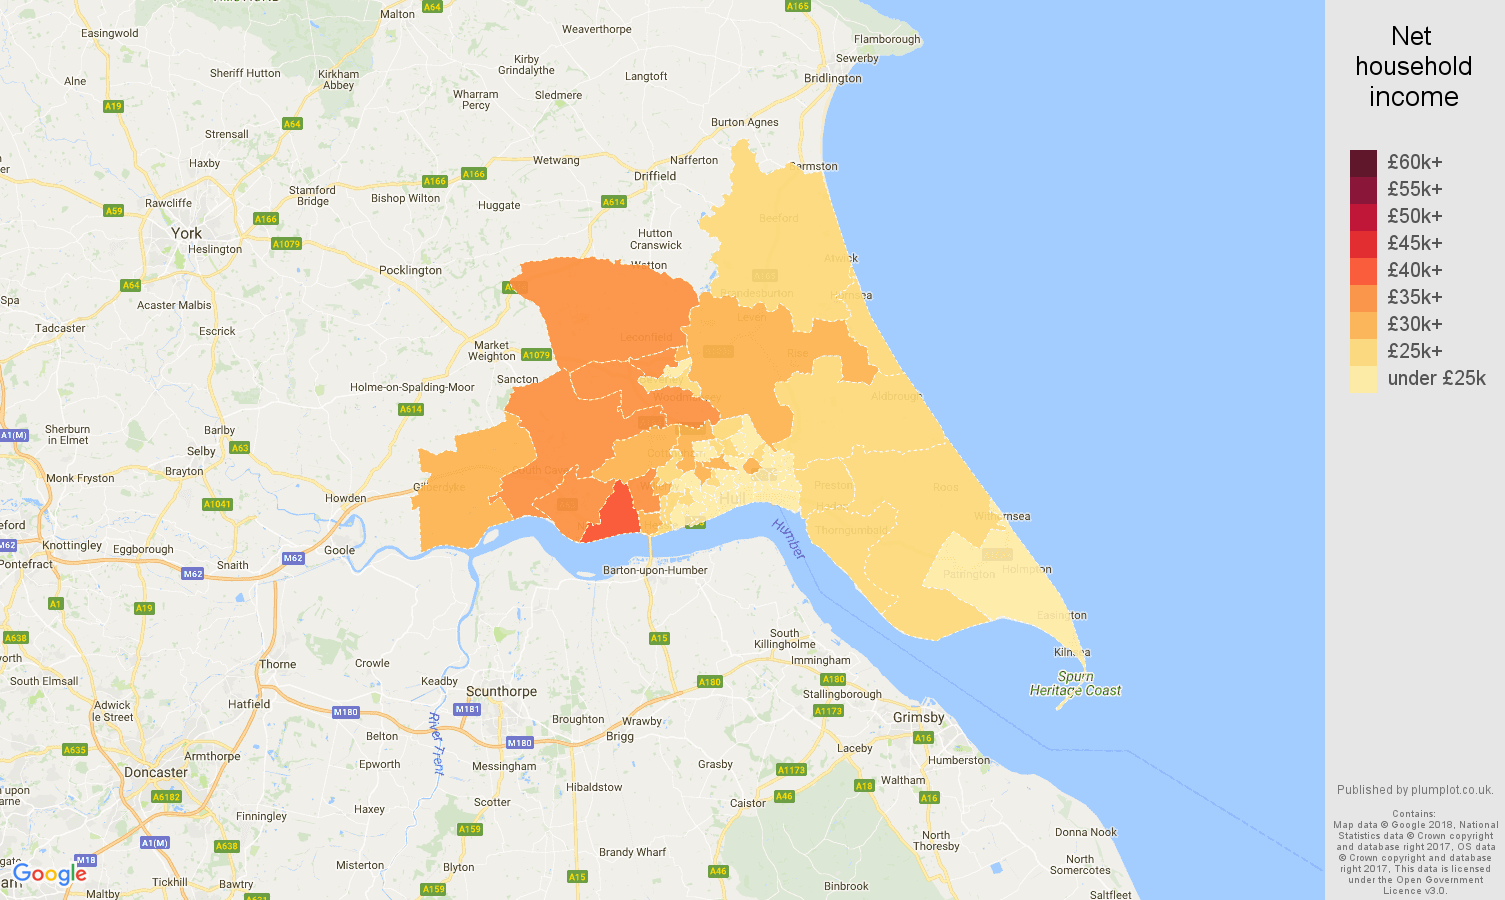 Hull net household income map